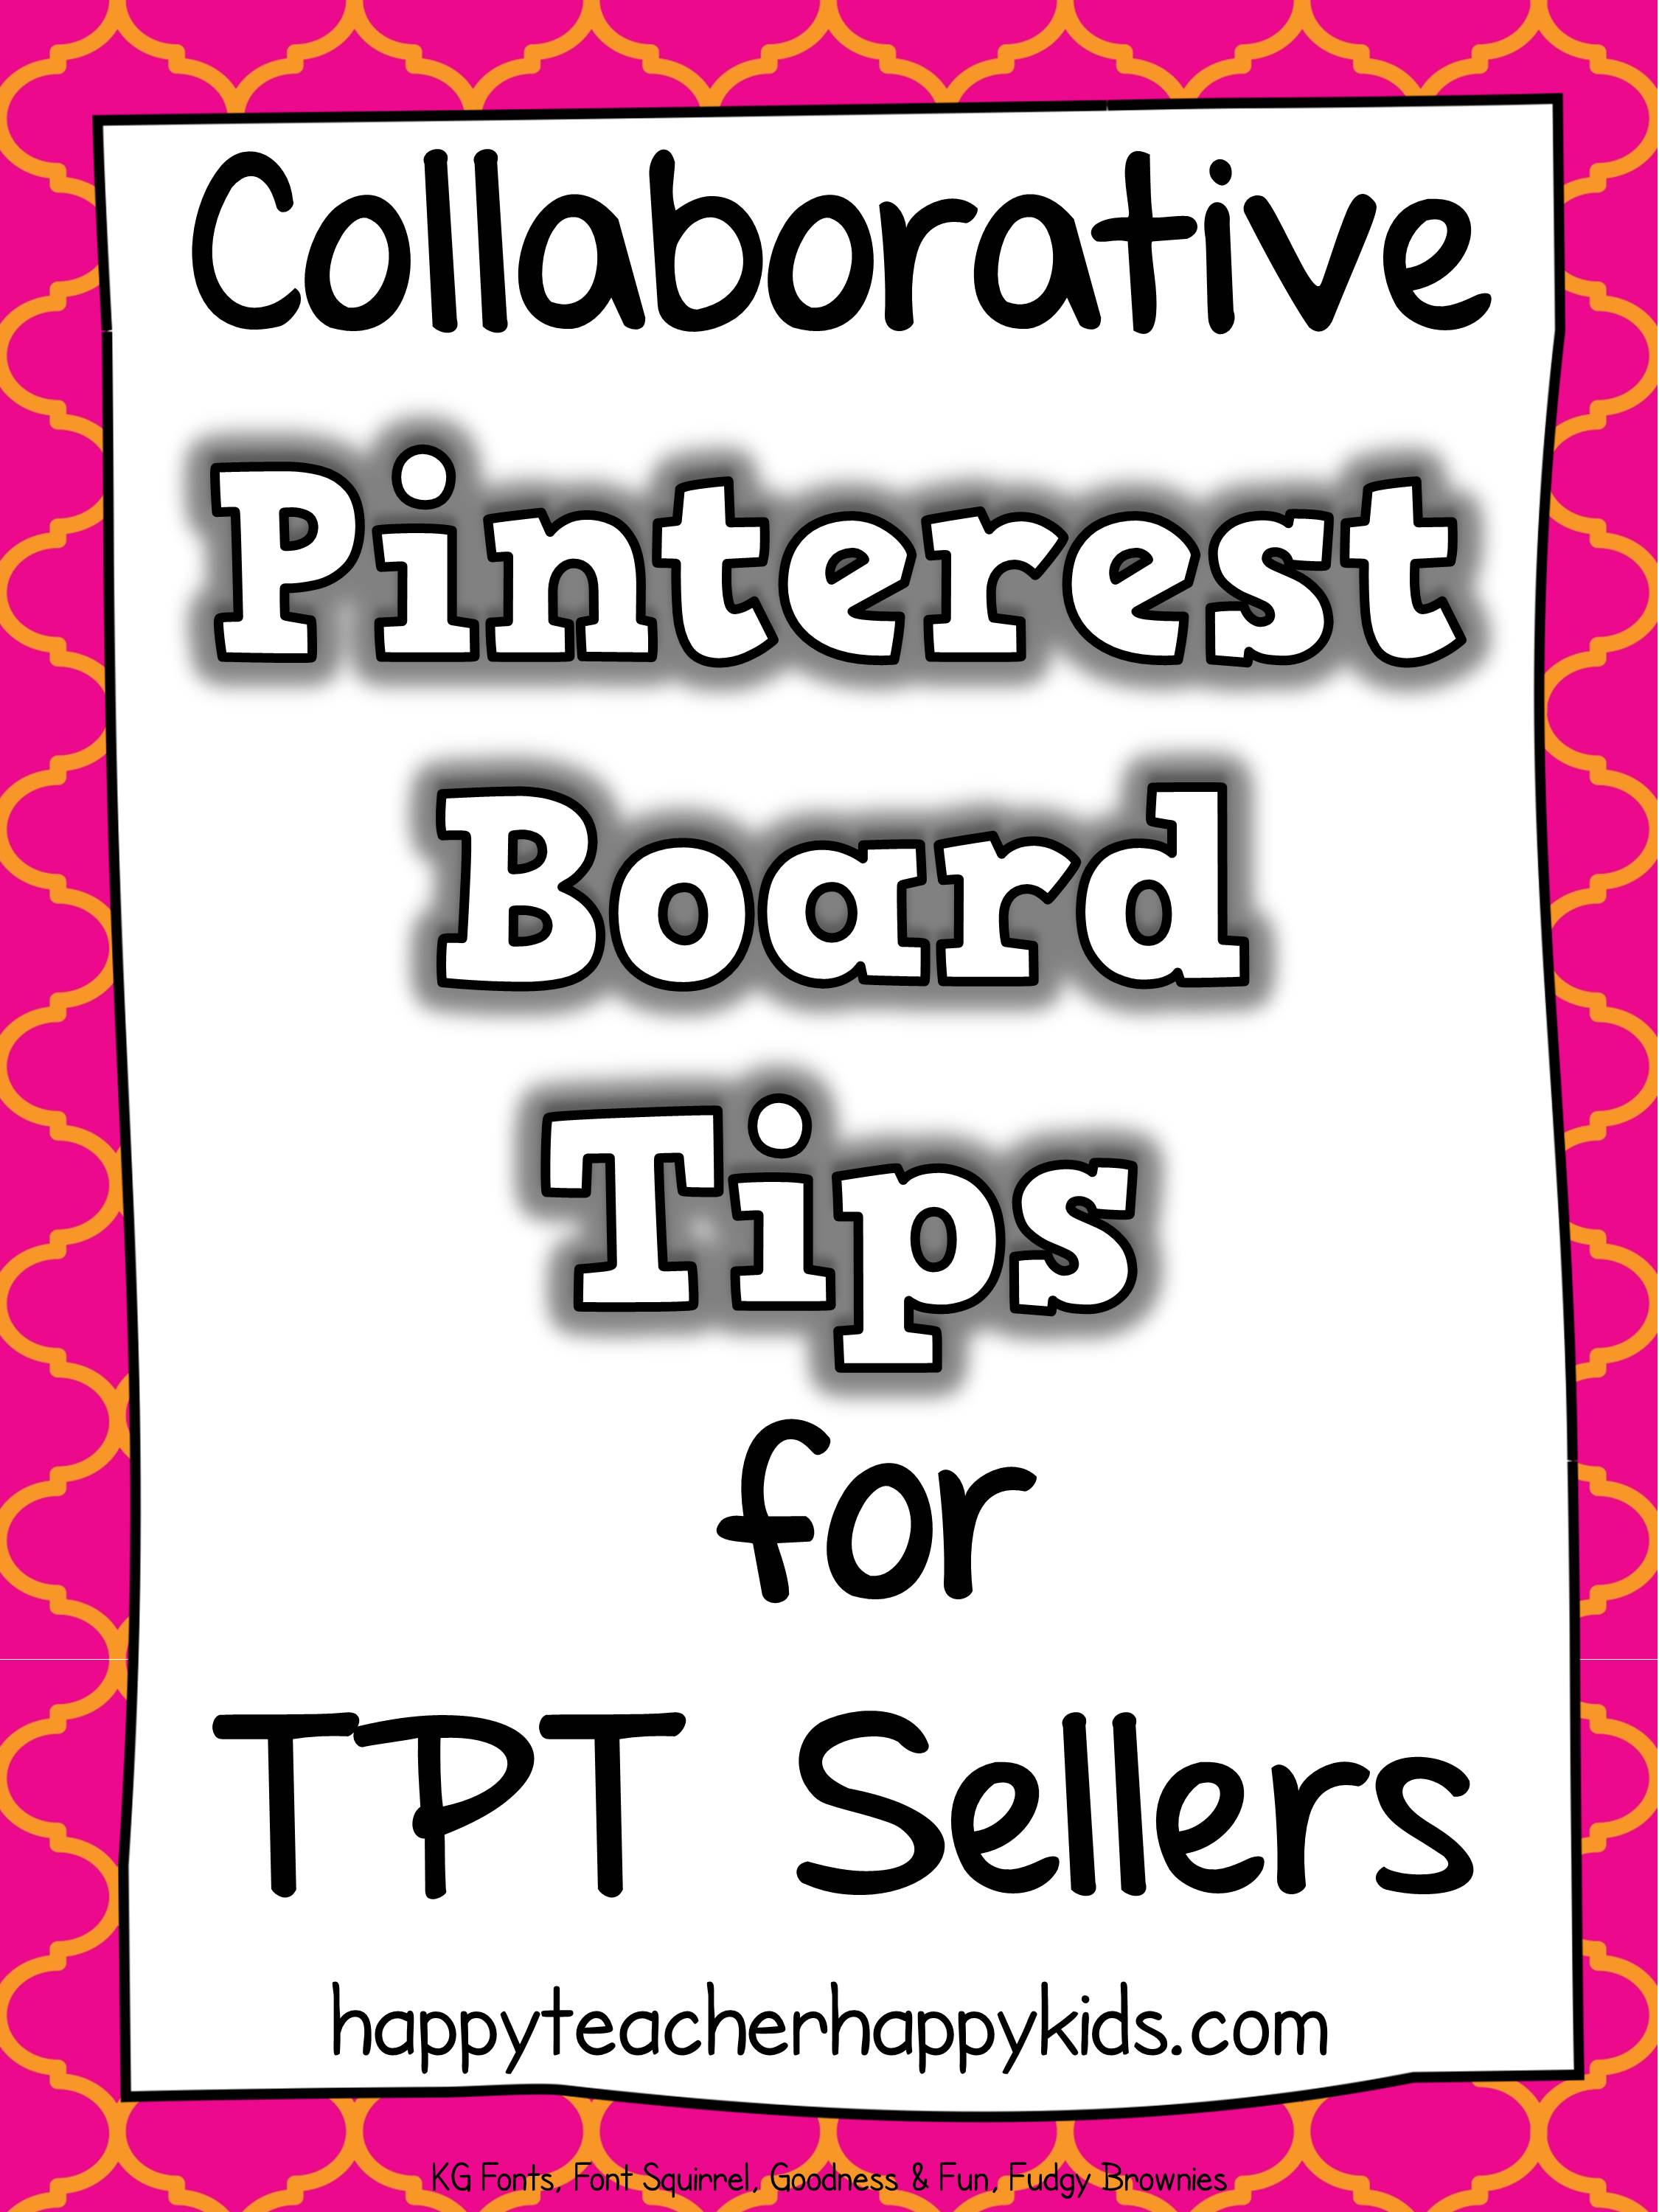 Collaborative Pinterest Board Tips for TPT Sellers